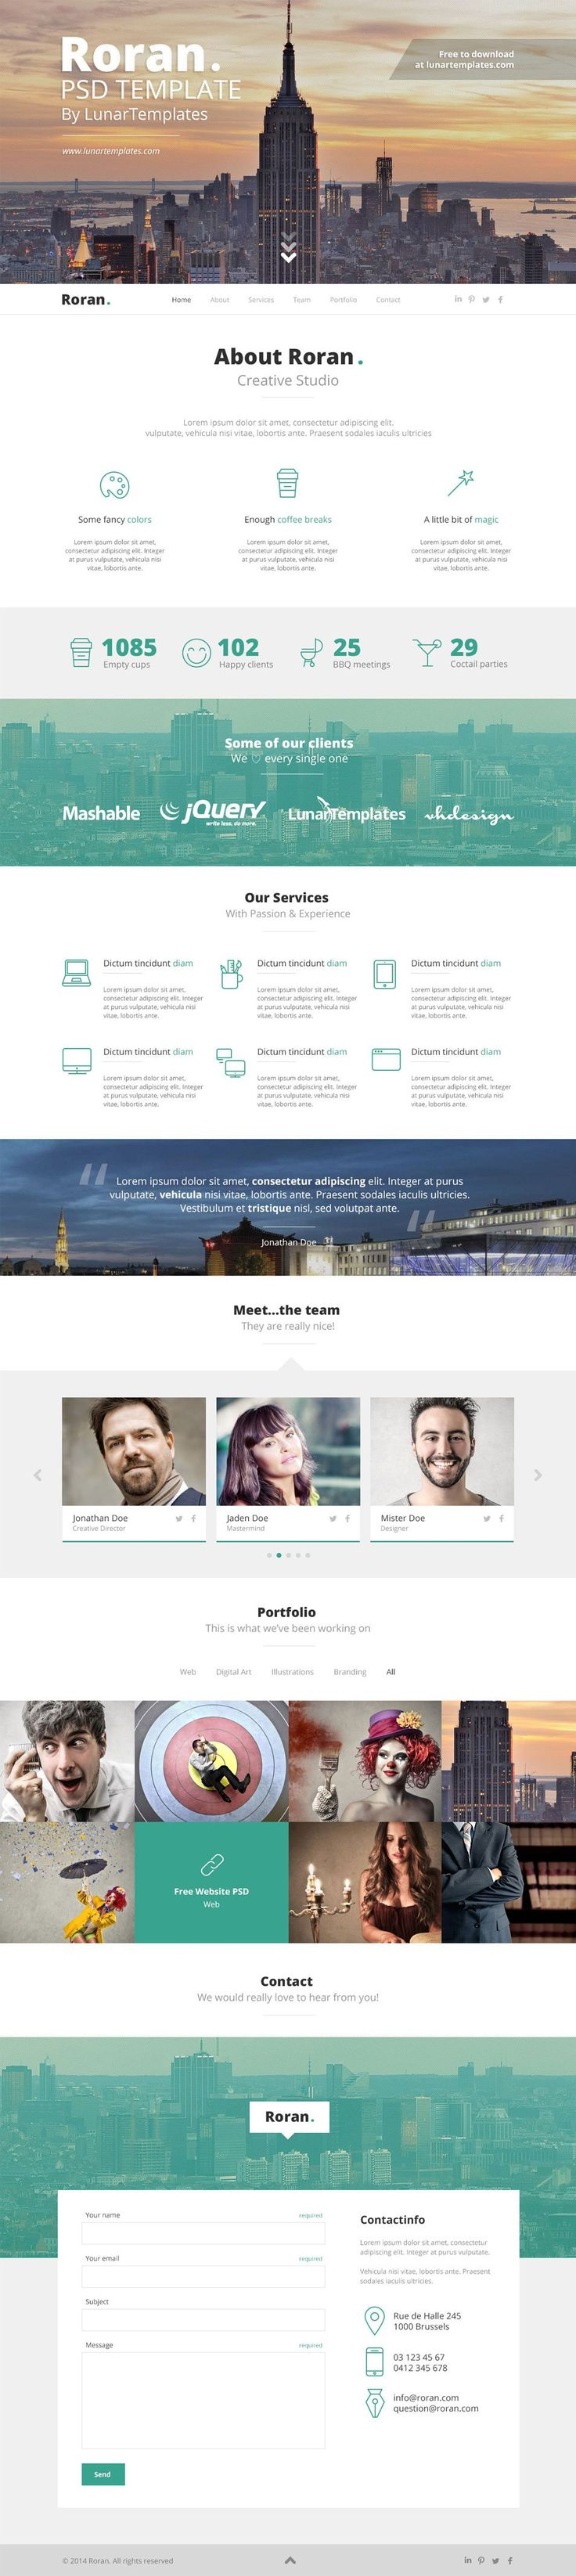 Roran - free One Page PSD Website Template